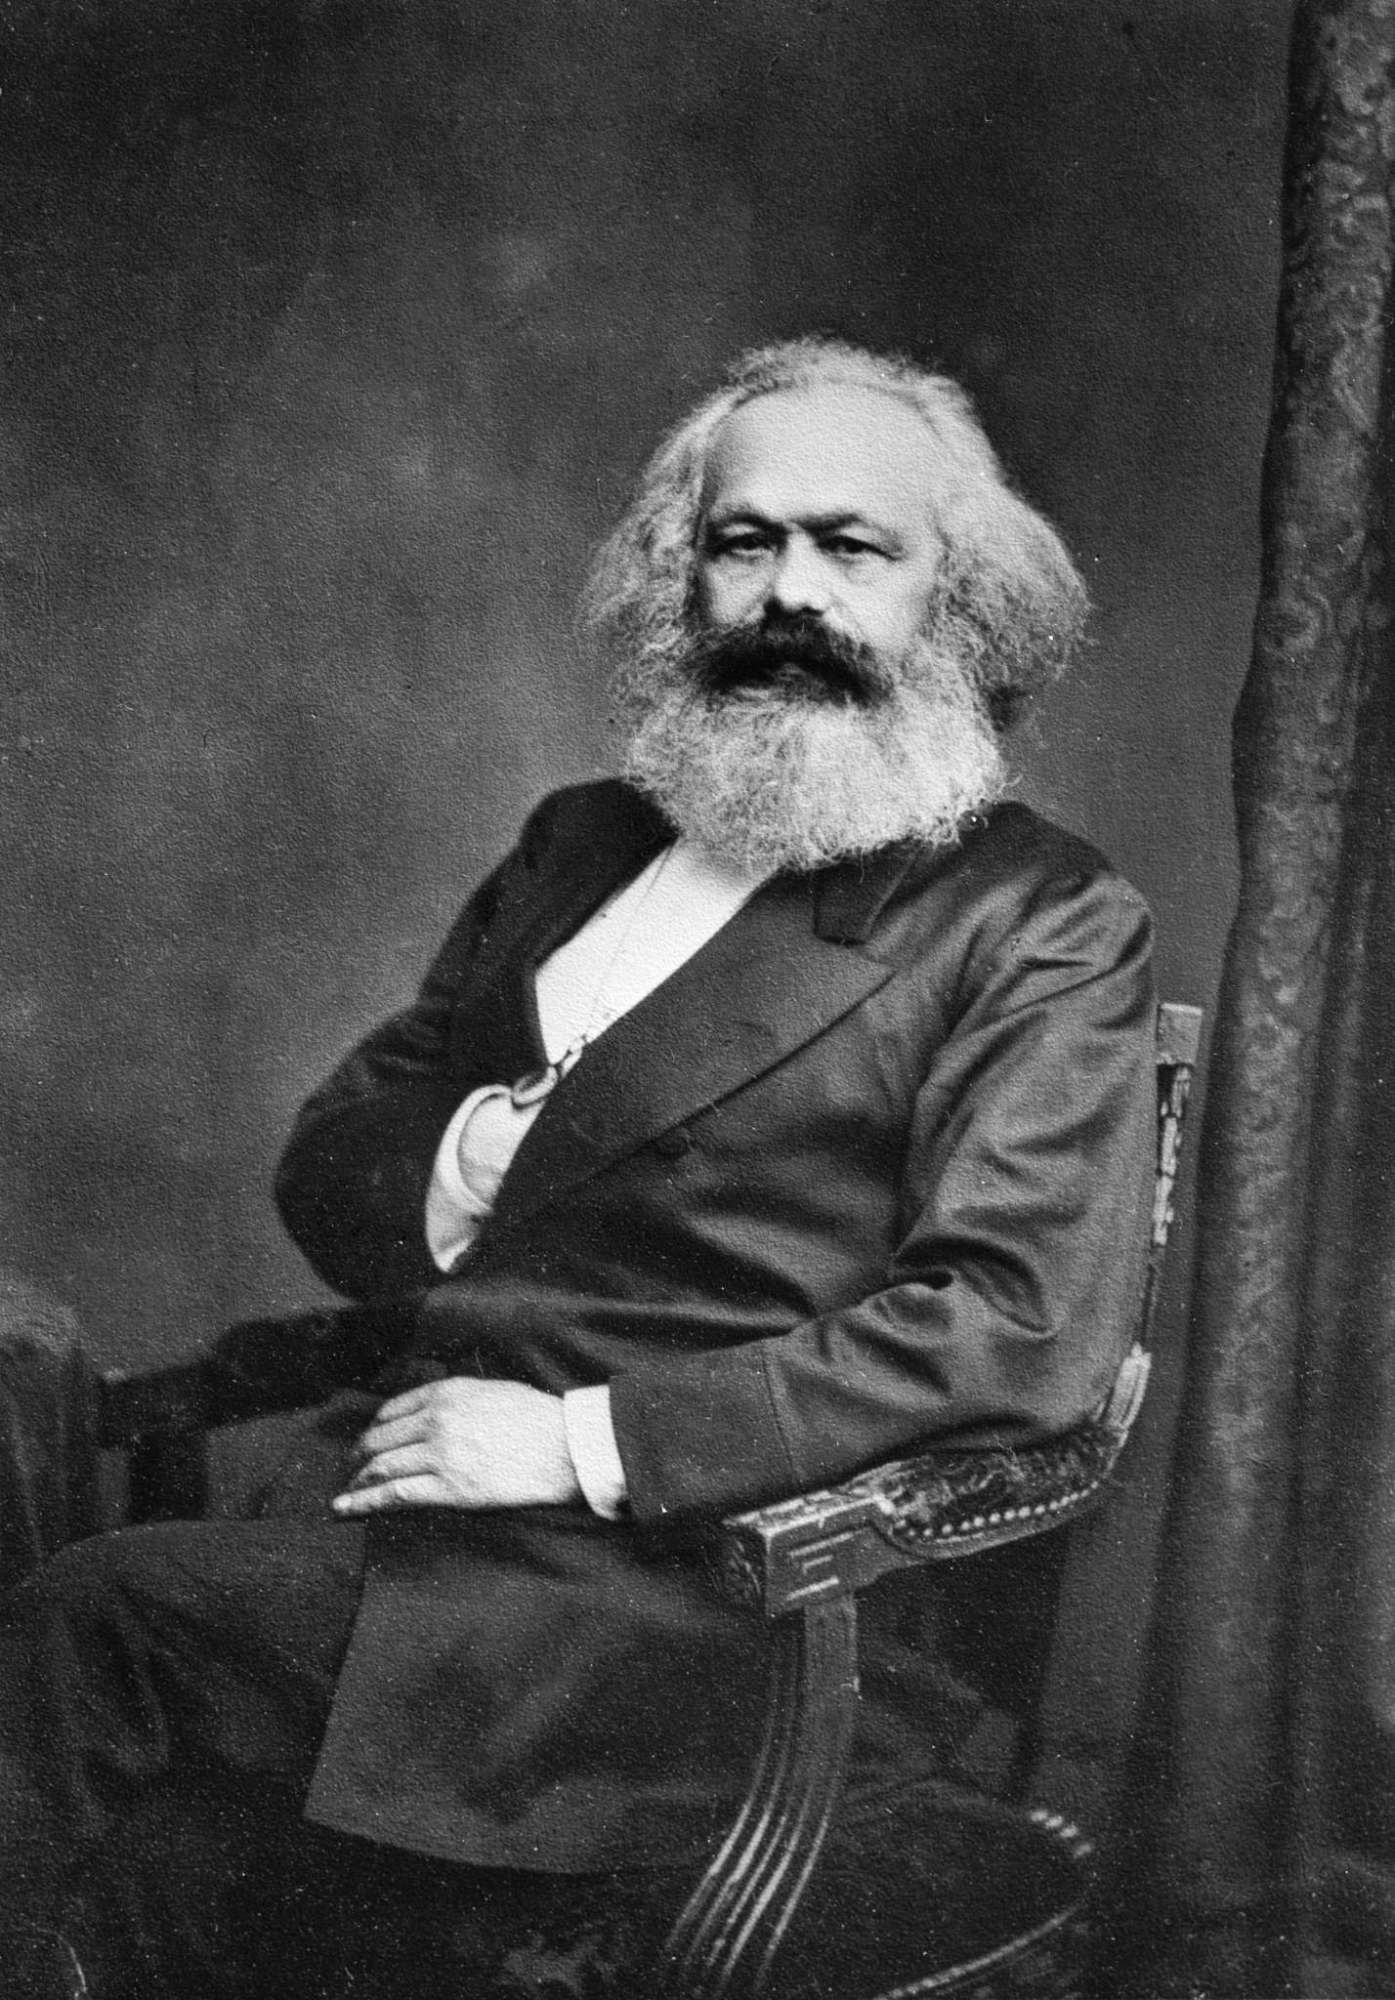 missing link das kapital von karl marx erschien vor 150. Black Bedroom Furniture Sets. Home Design Ideas